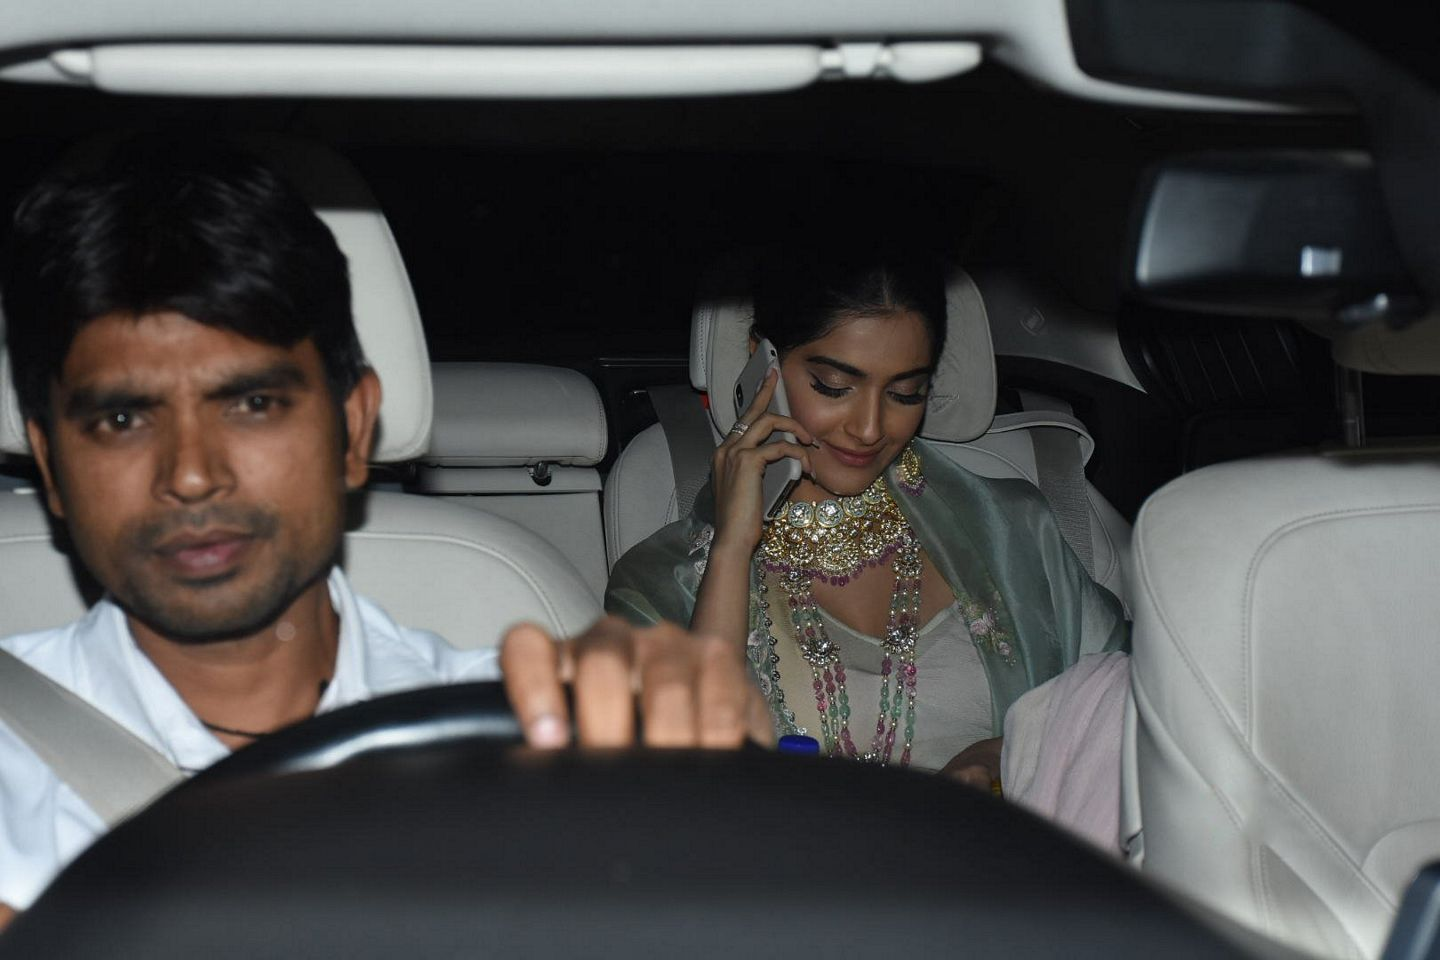 Sonam Kapoor Ahuja Latest New Pics